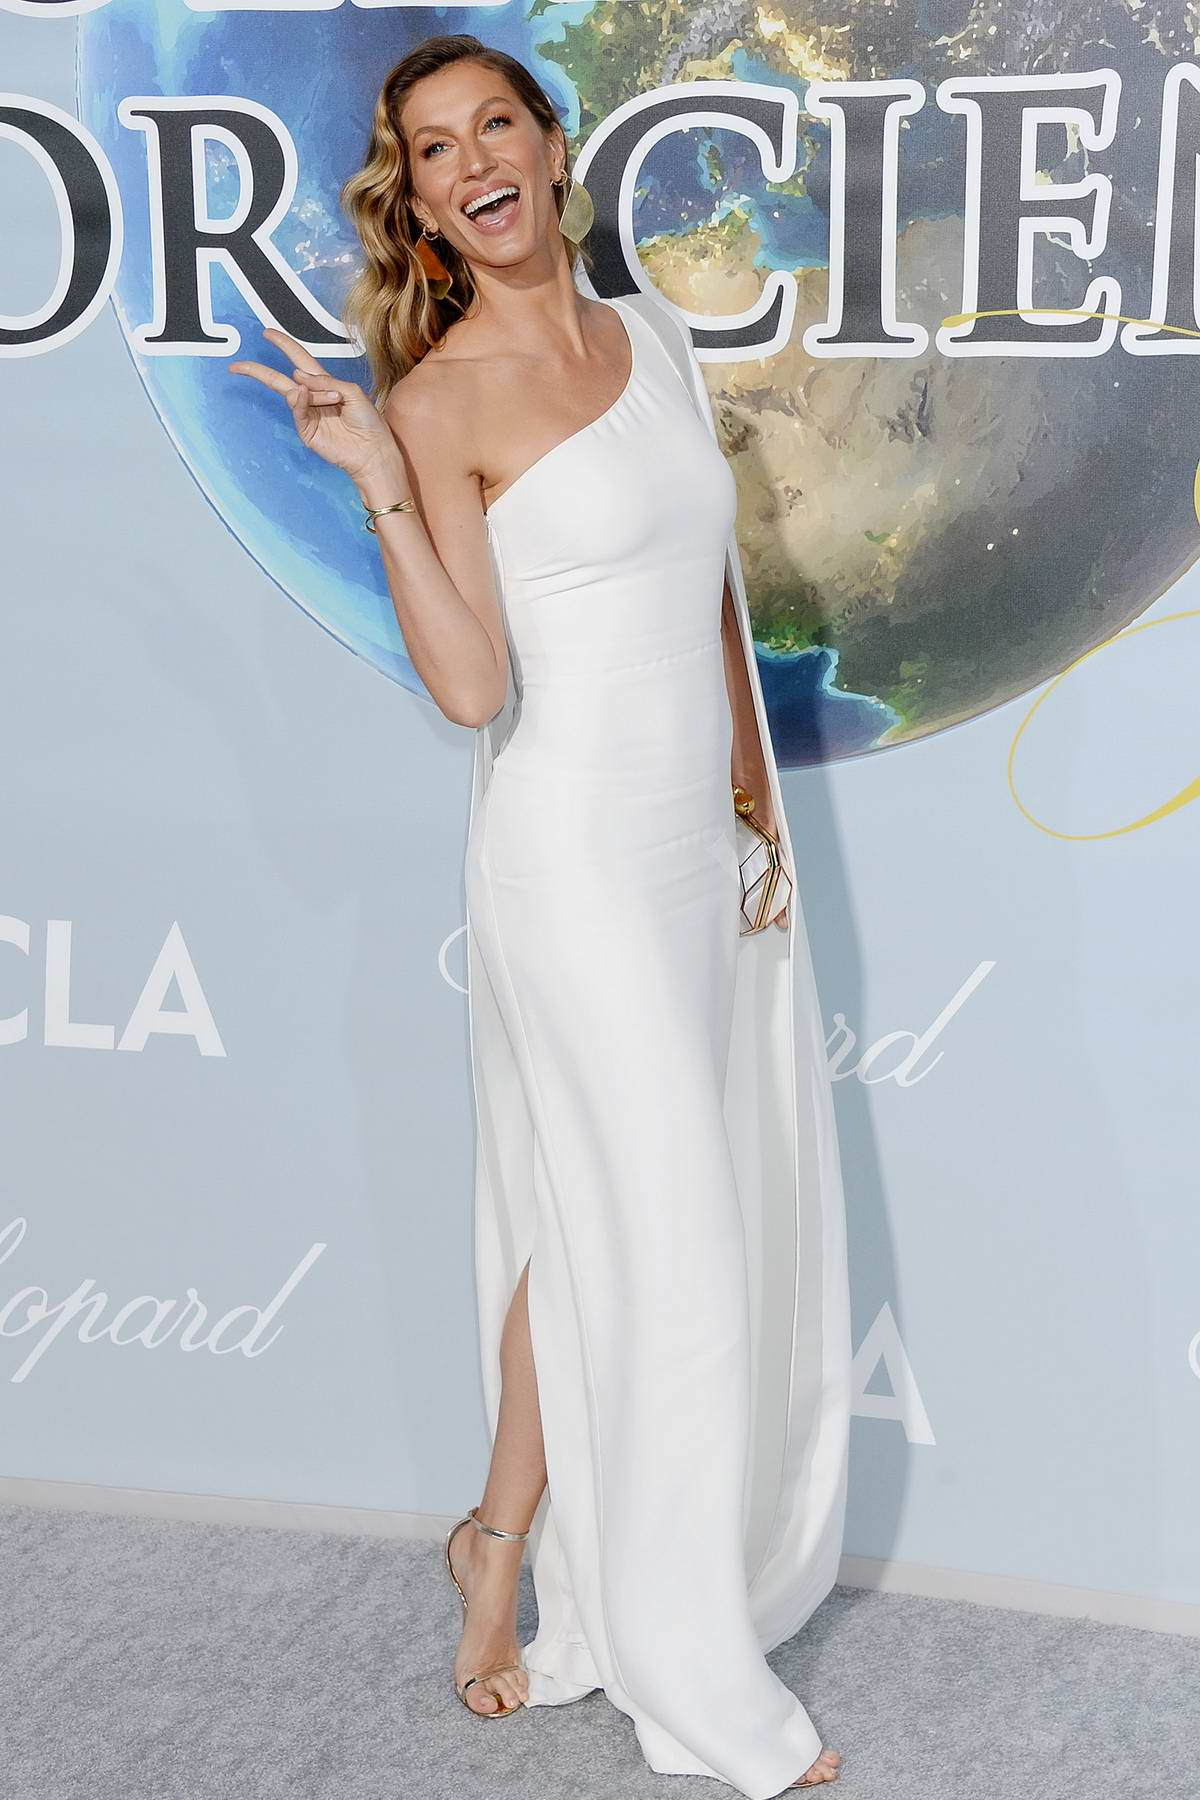 Gisele Bundchen attends the Hollywood for Science Gala in Los Angeles